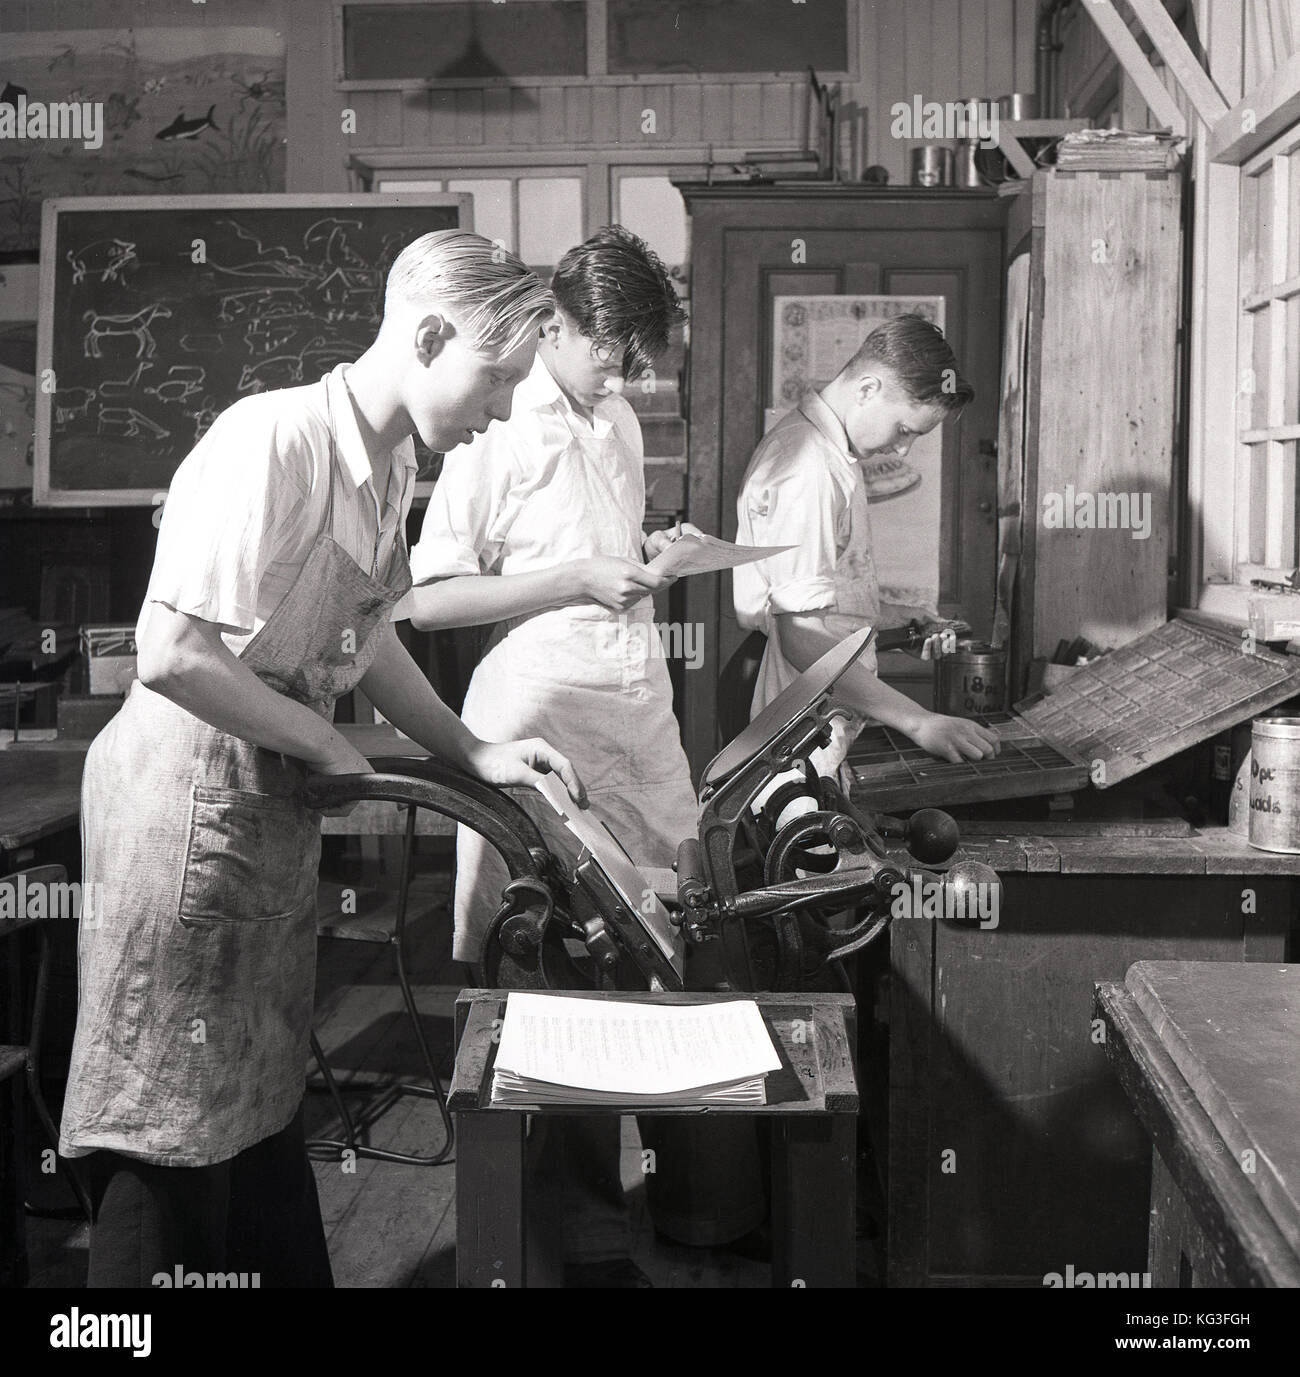 1950s, England, three young lads in white overalls using a printing press in a wooden workshop. - Stock Image